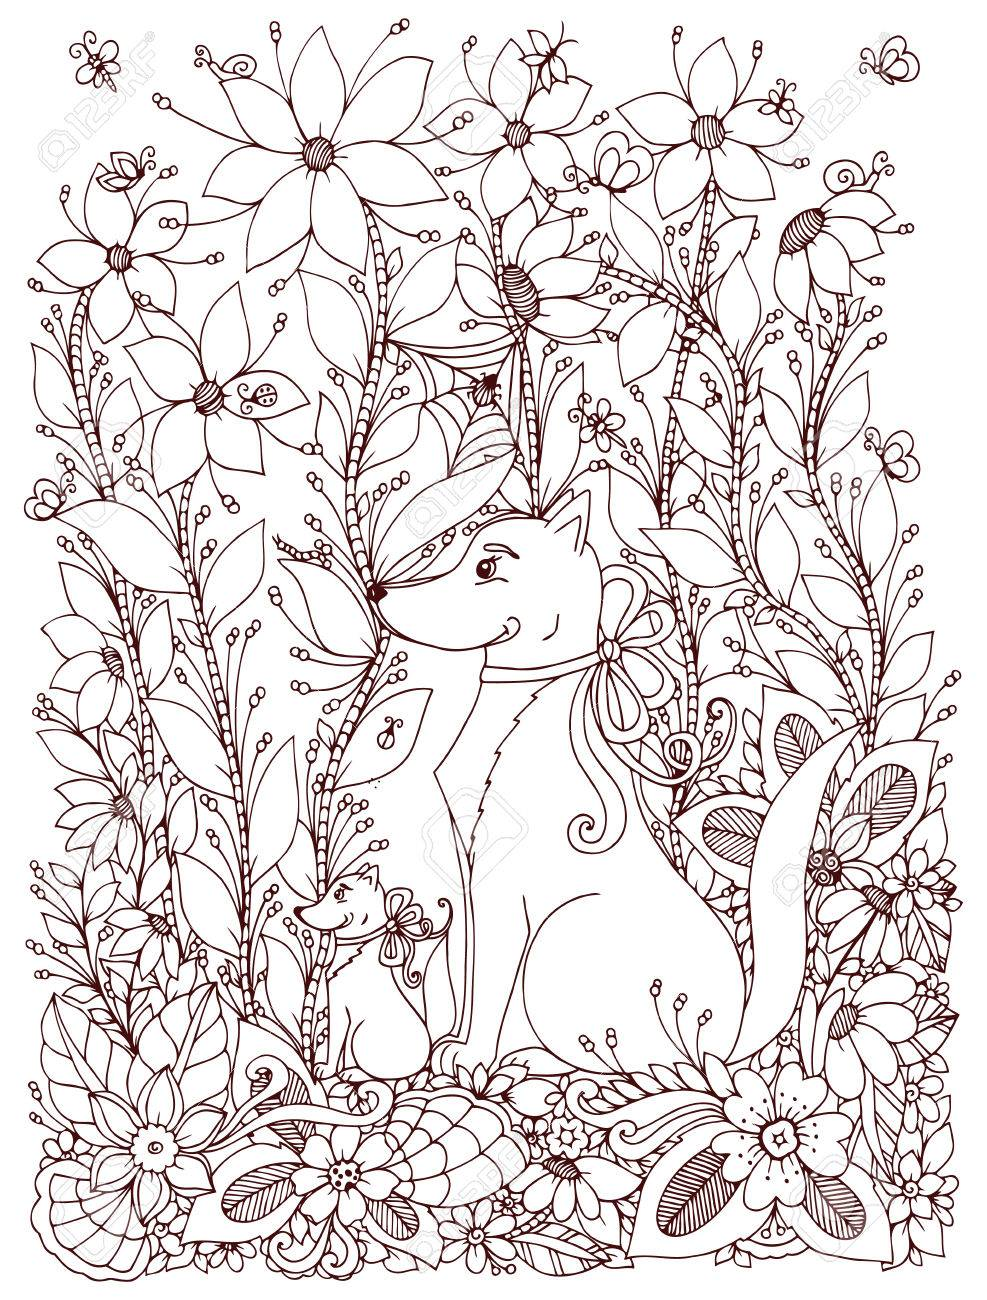 Vector illustration Zen Tangle dog and puppy sitting in the flowers